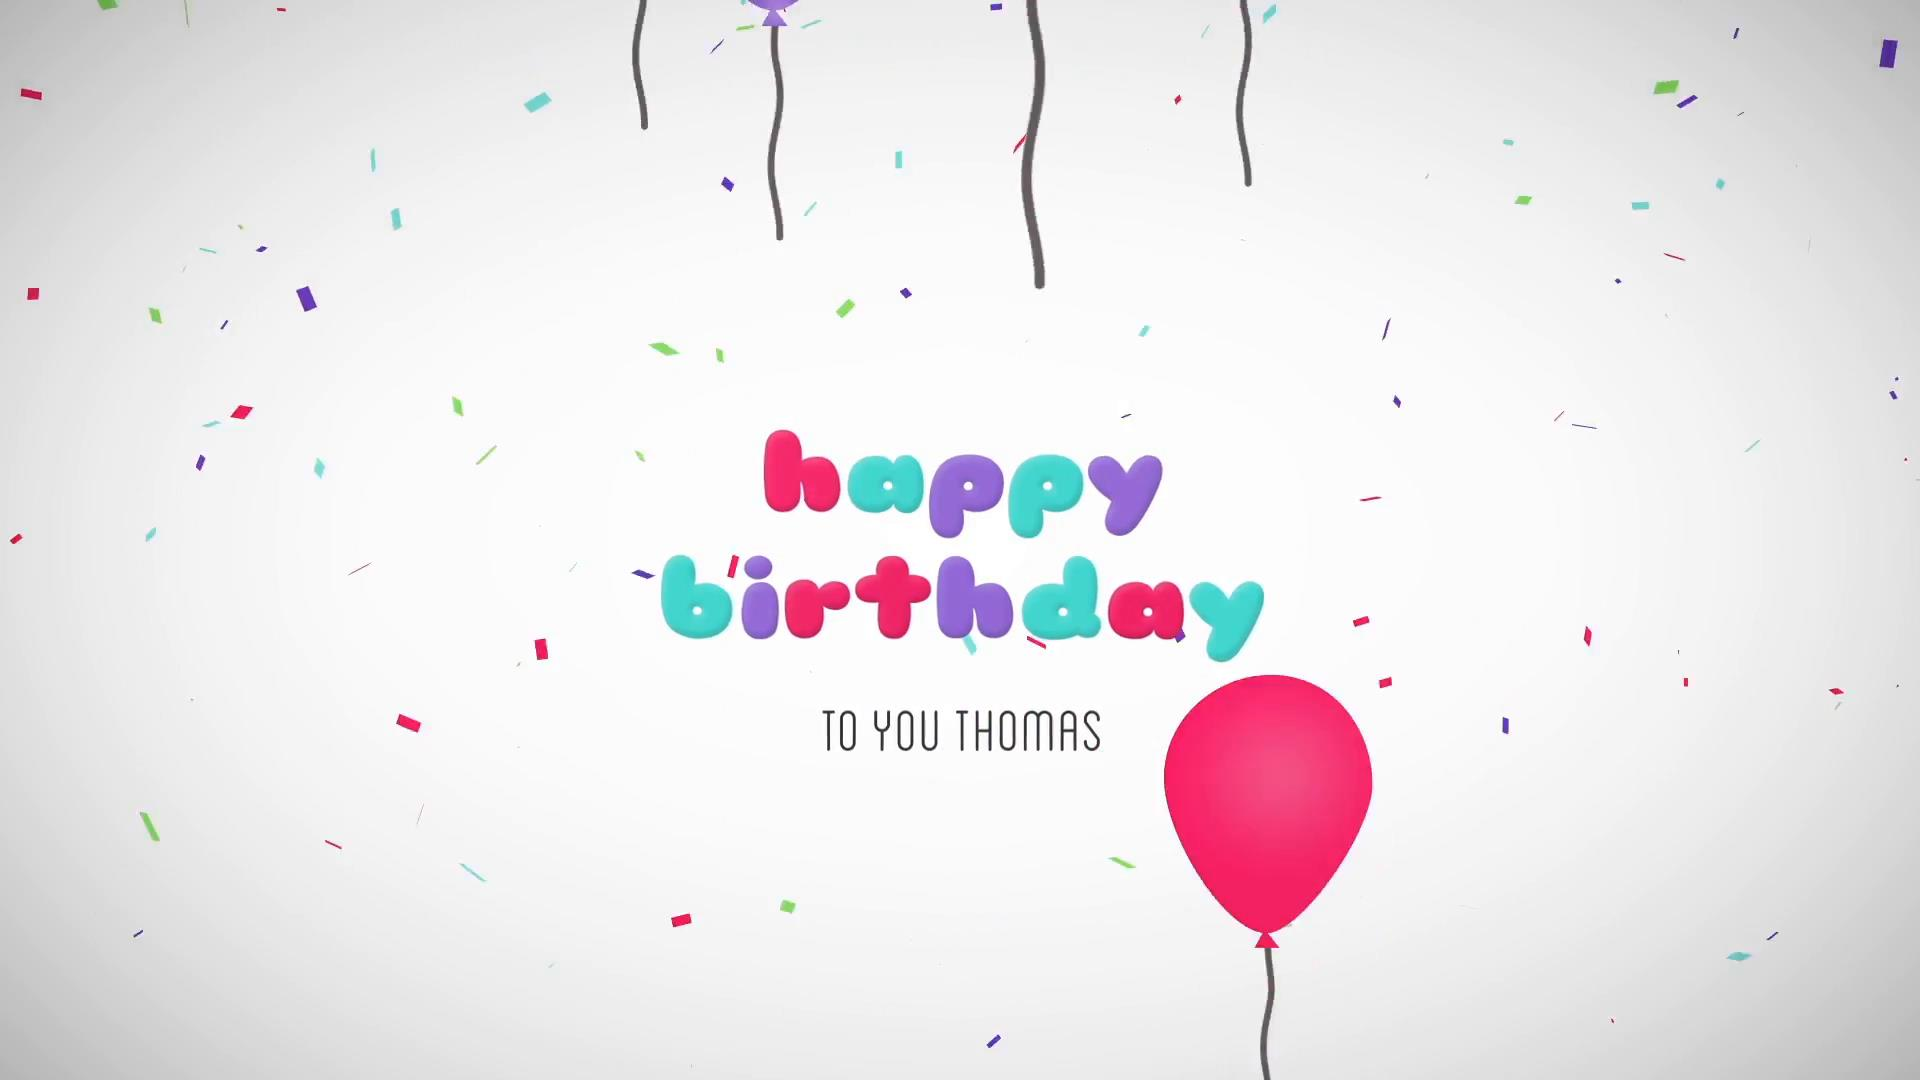 happy birthday logo images ; happy-birthday-wishes-message-balloons-particles-logo-reveal-text-title-animation_hxktdrrs__p__F0001